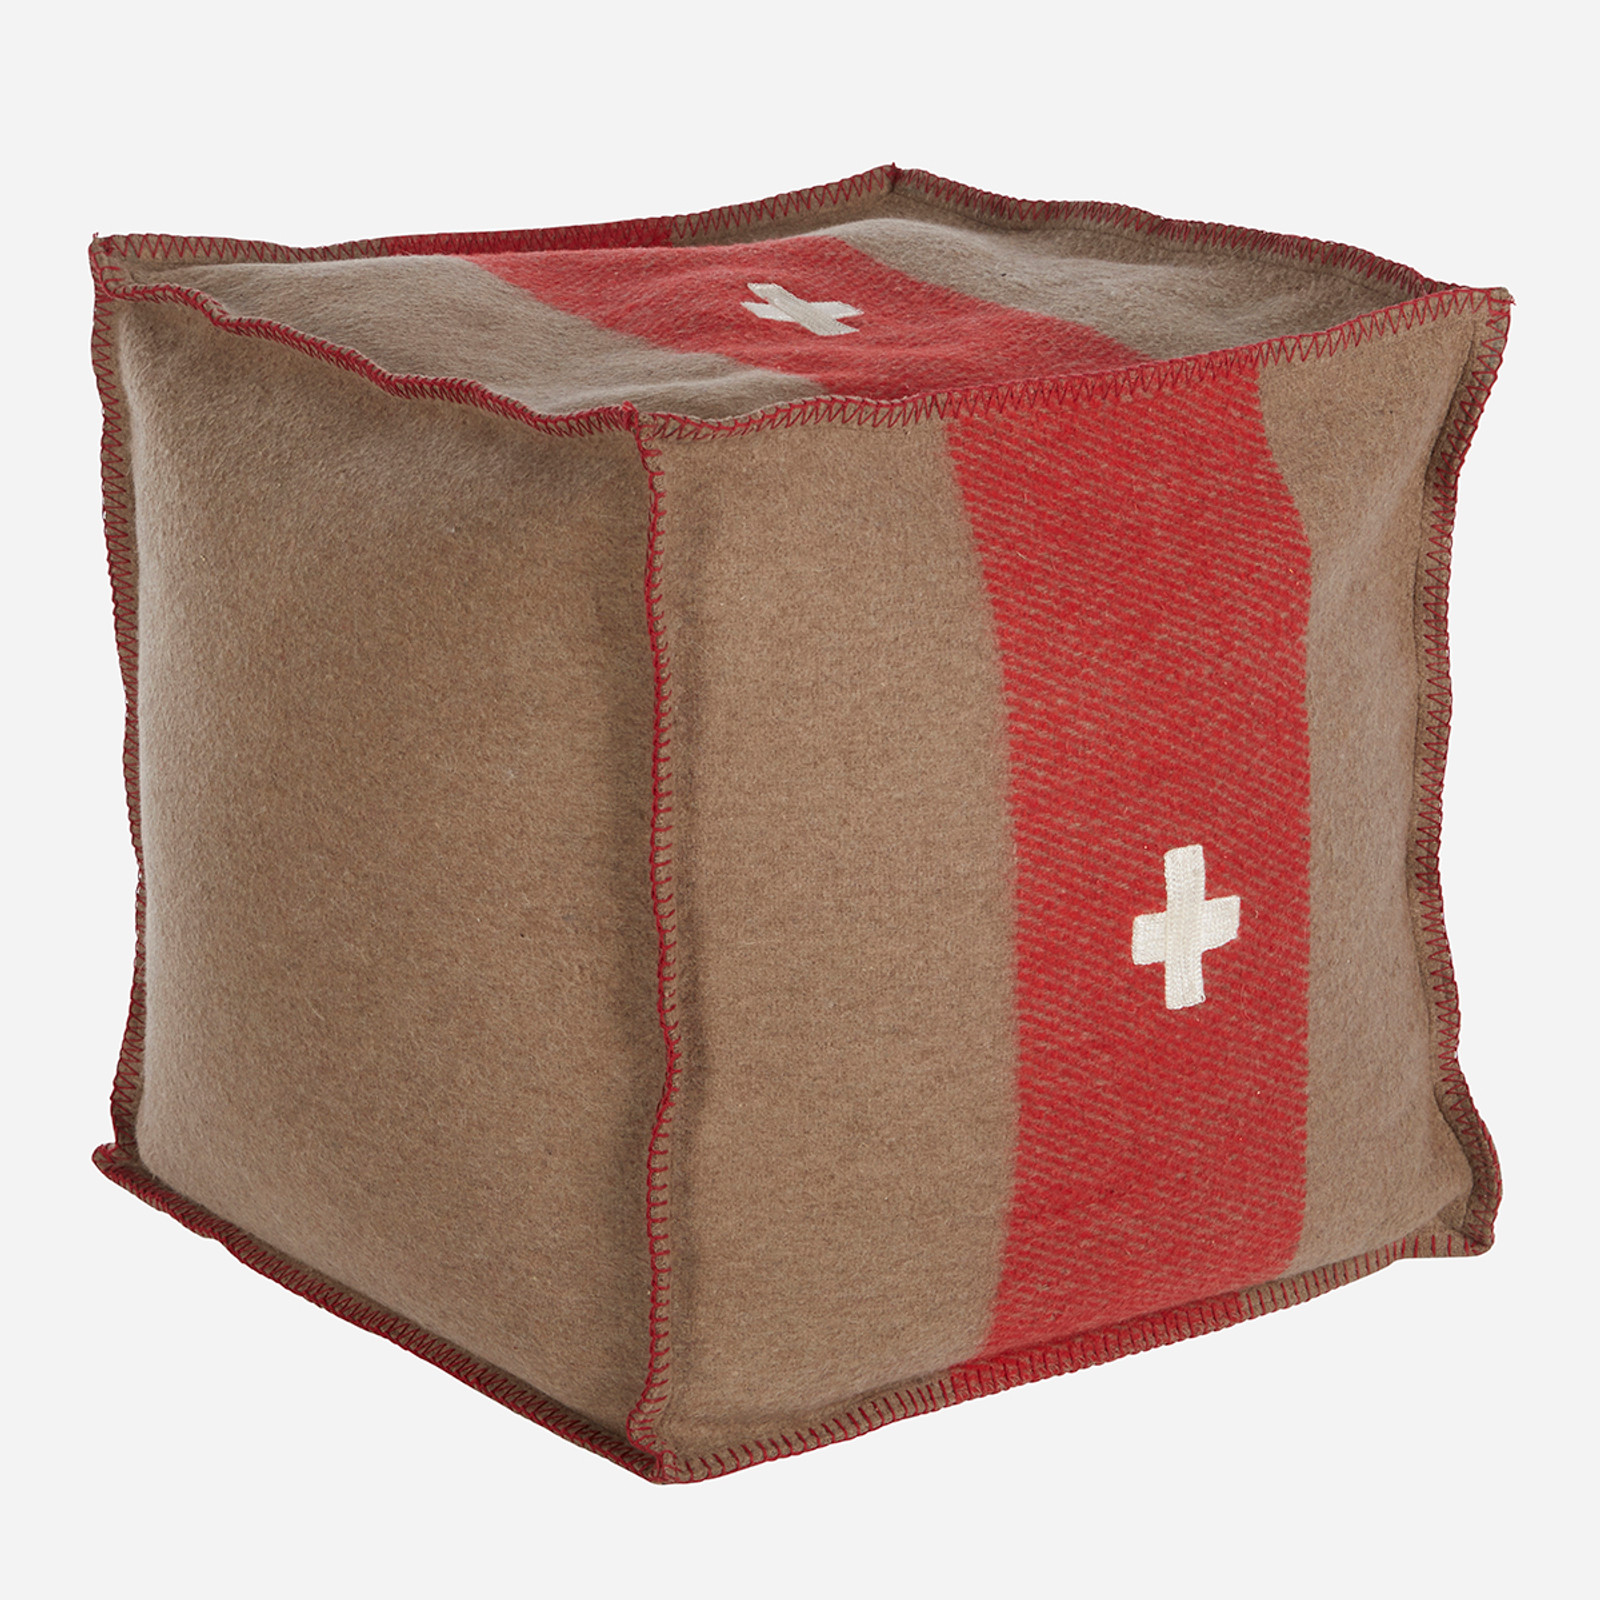 Swiss Army Pouf 24x24x24 Brown/Red  (WHS Open Box Stock)